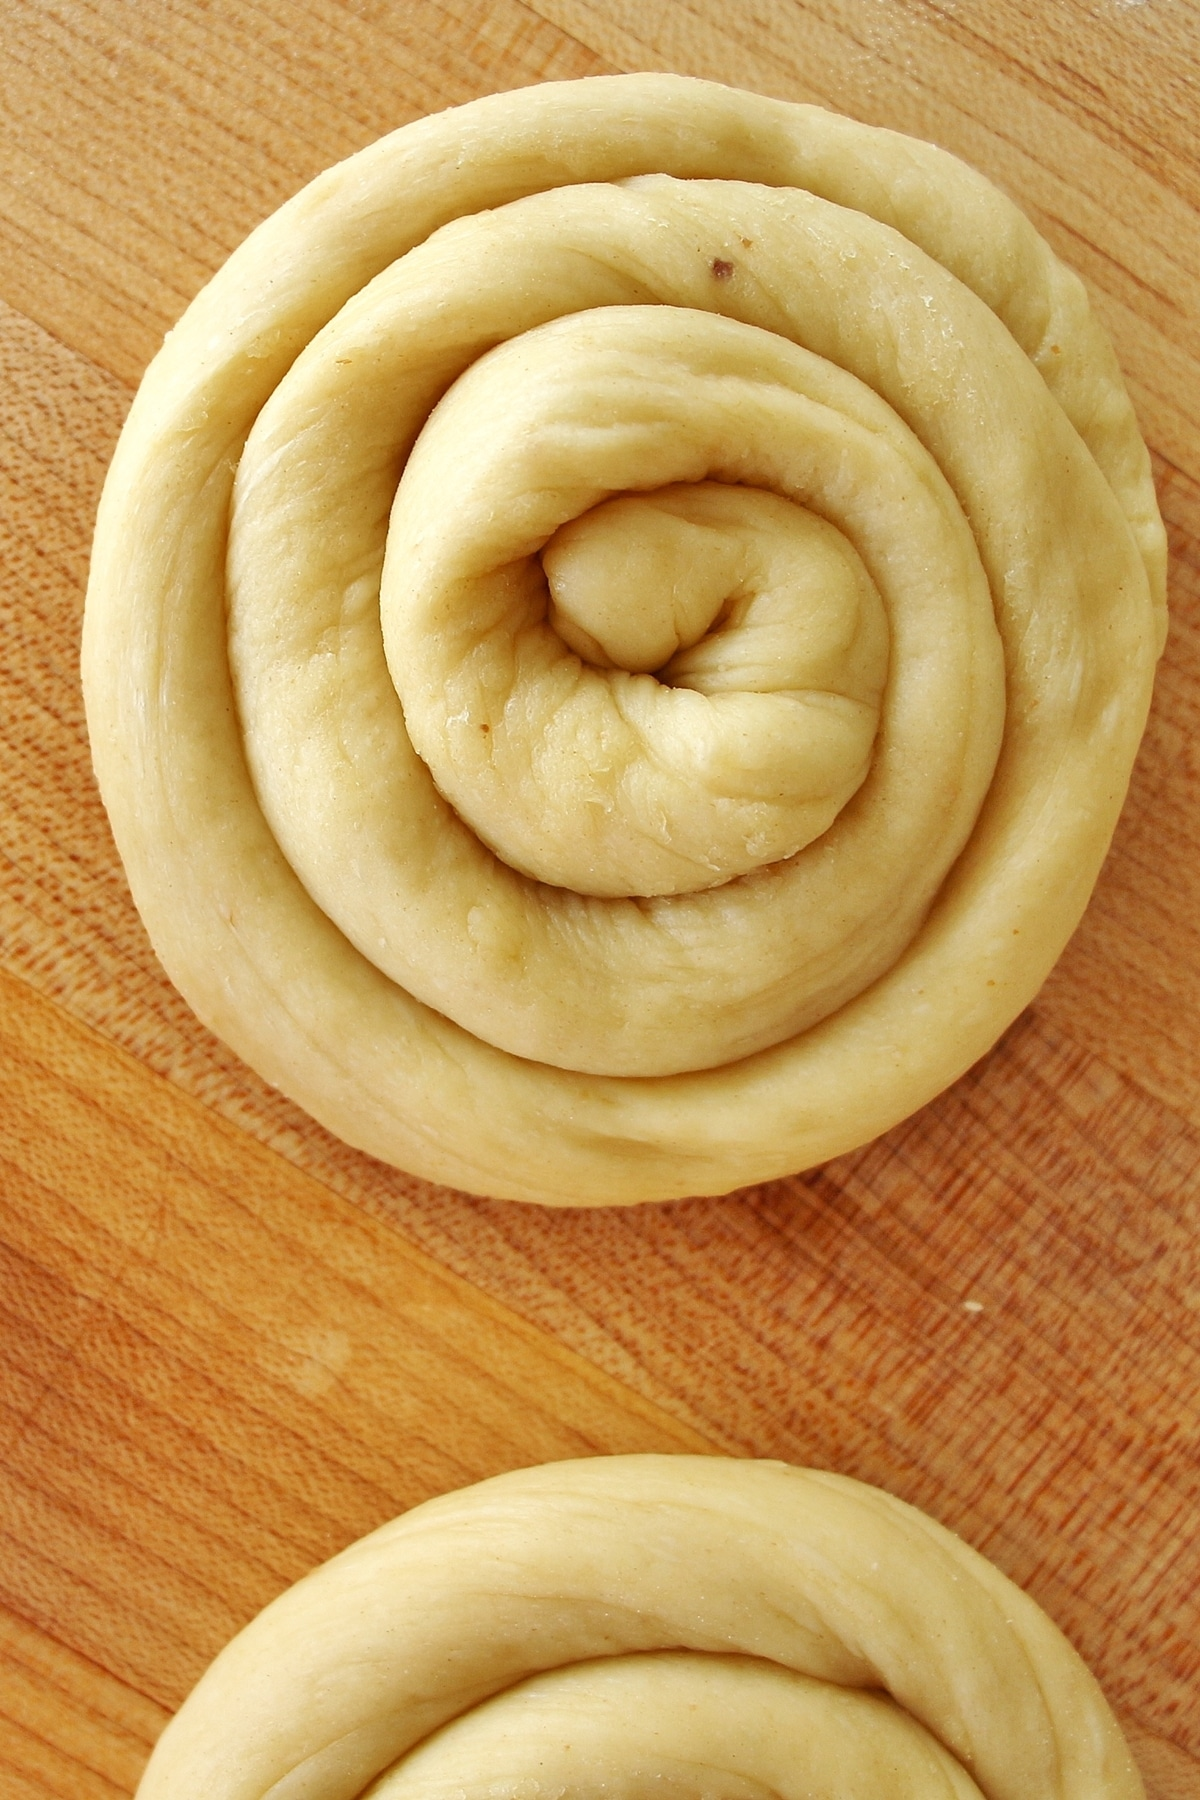 Dough shaped into a spiral or snail shape on a wooden cutting board